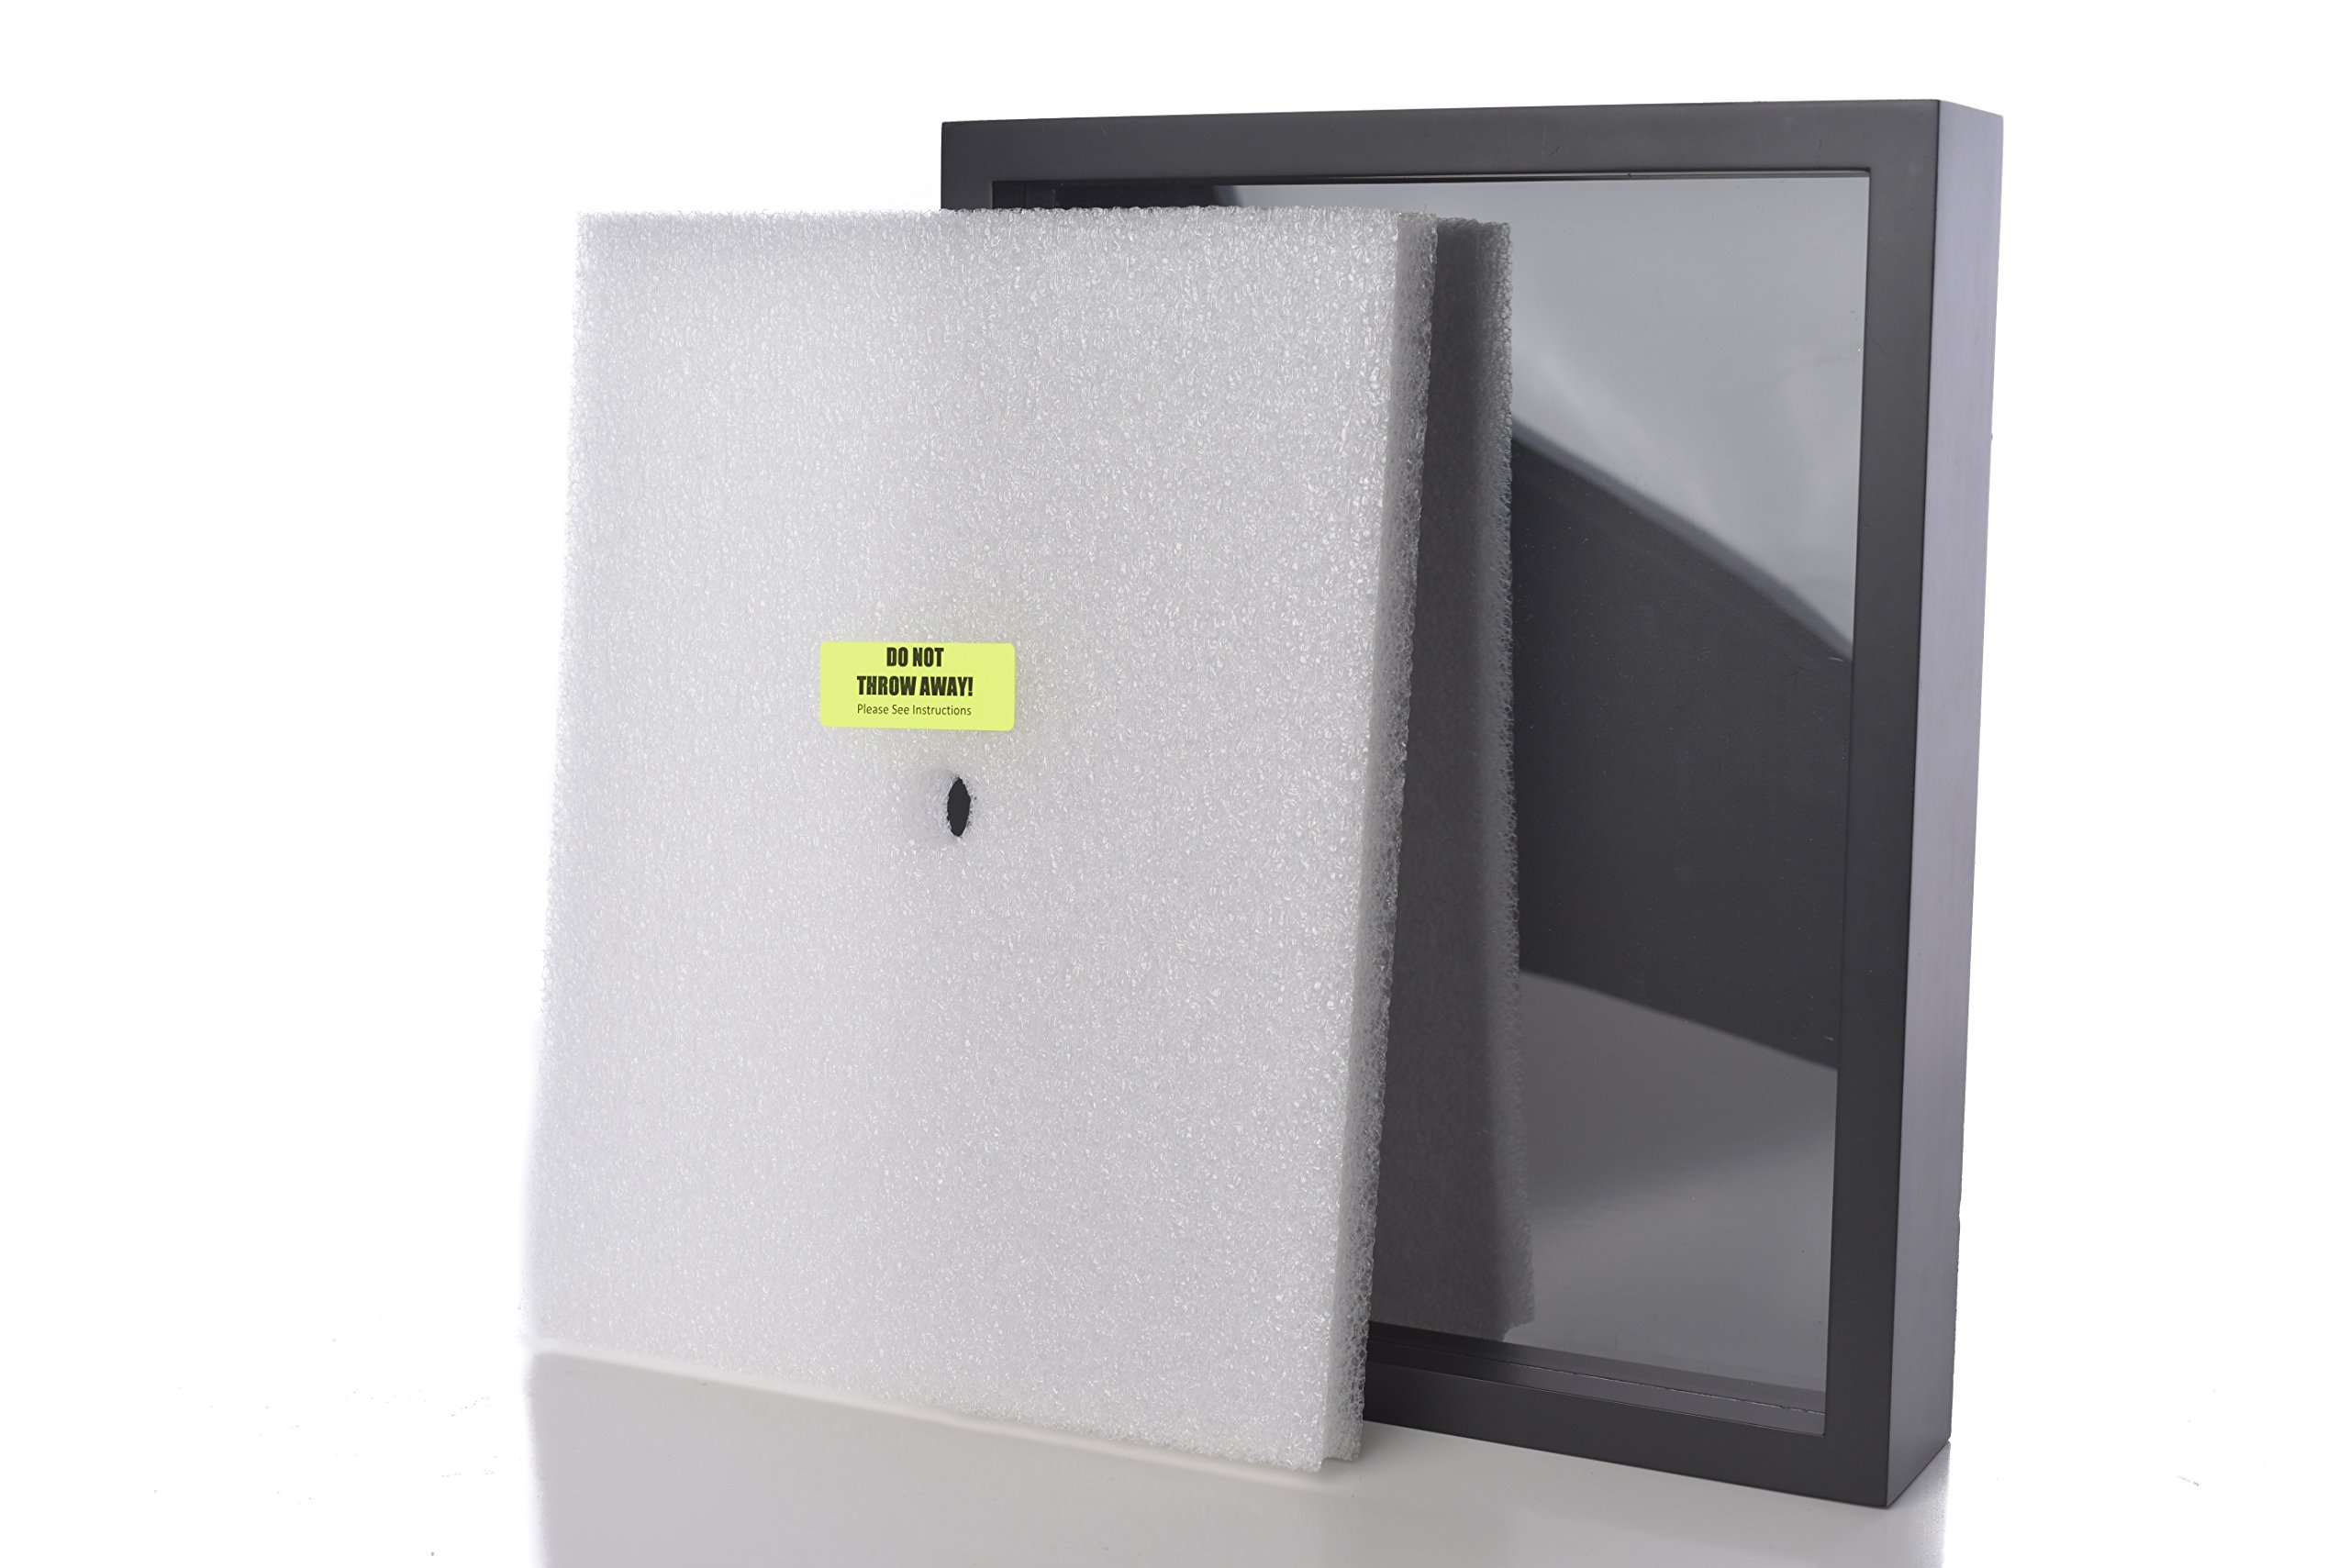 Buy Umbra T-Frame T-Shirt Display, White in Cheap Price on m.alibaba.com